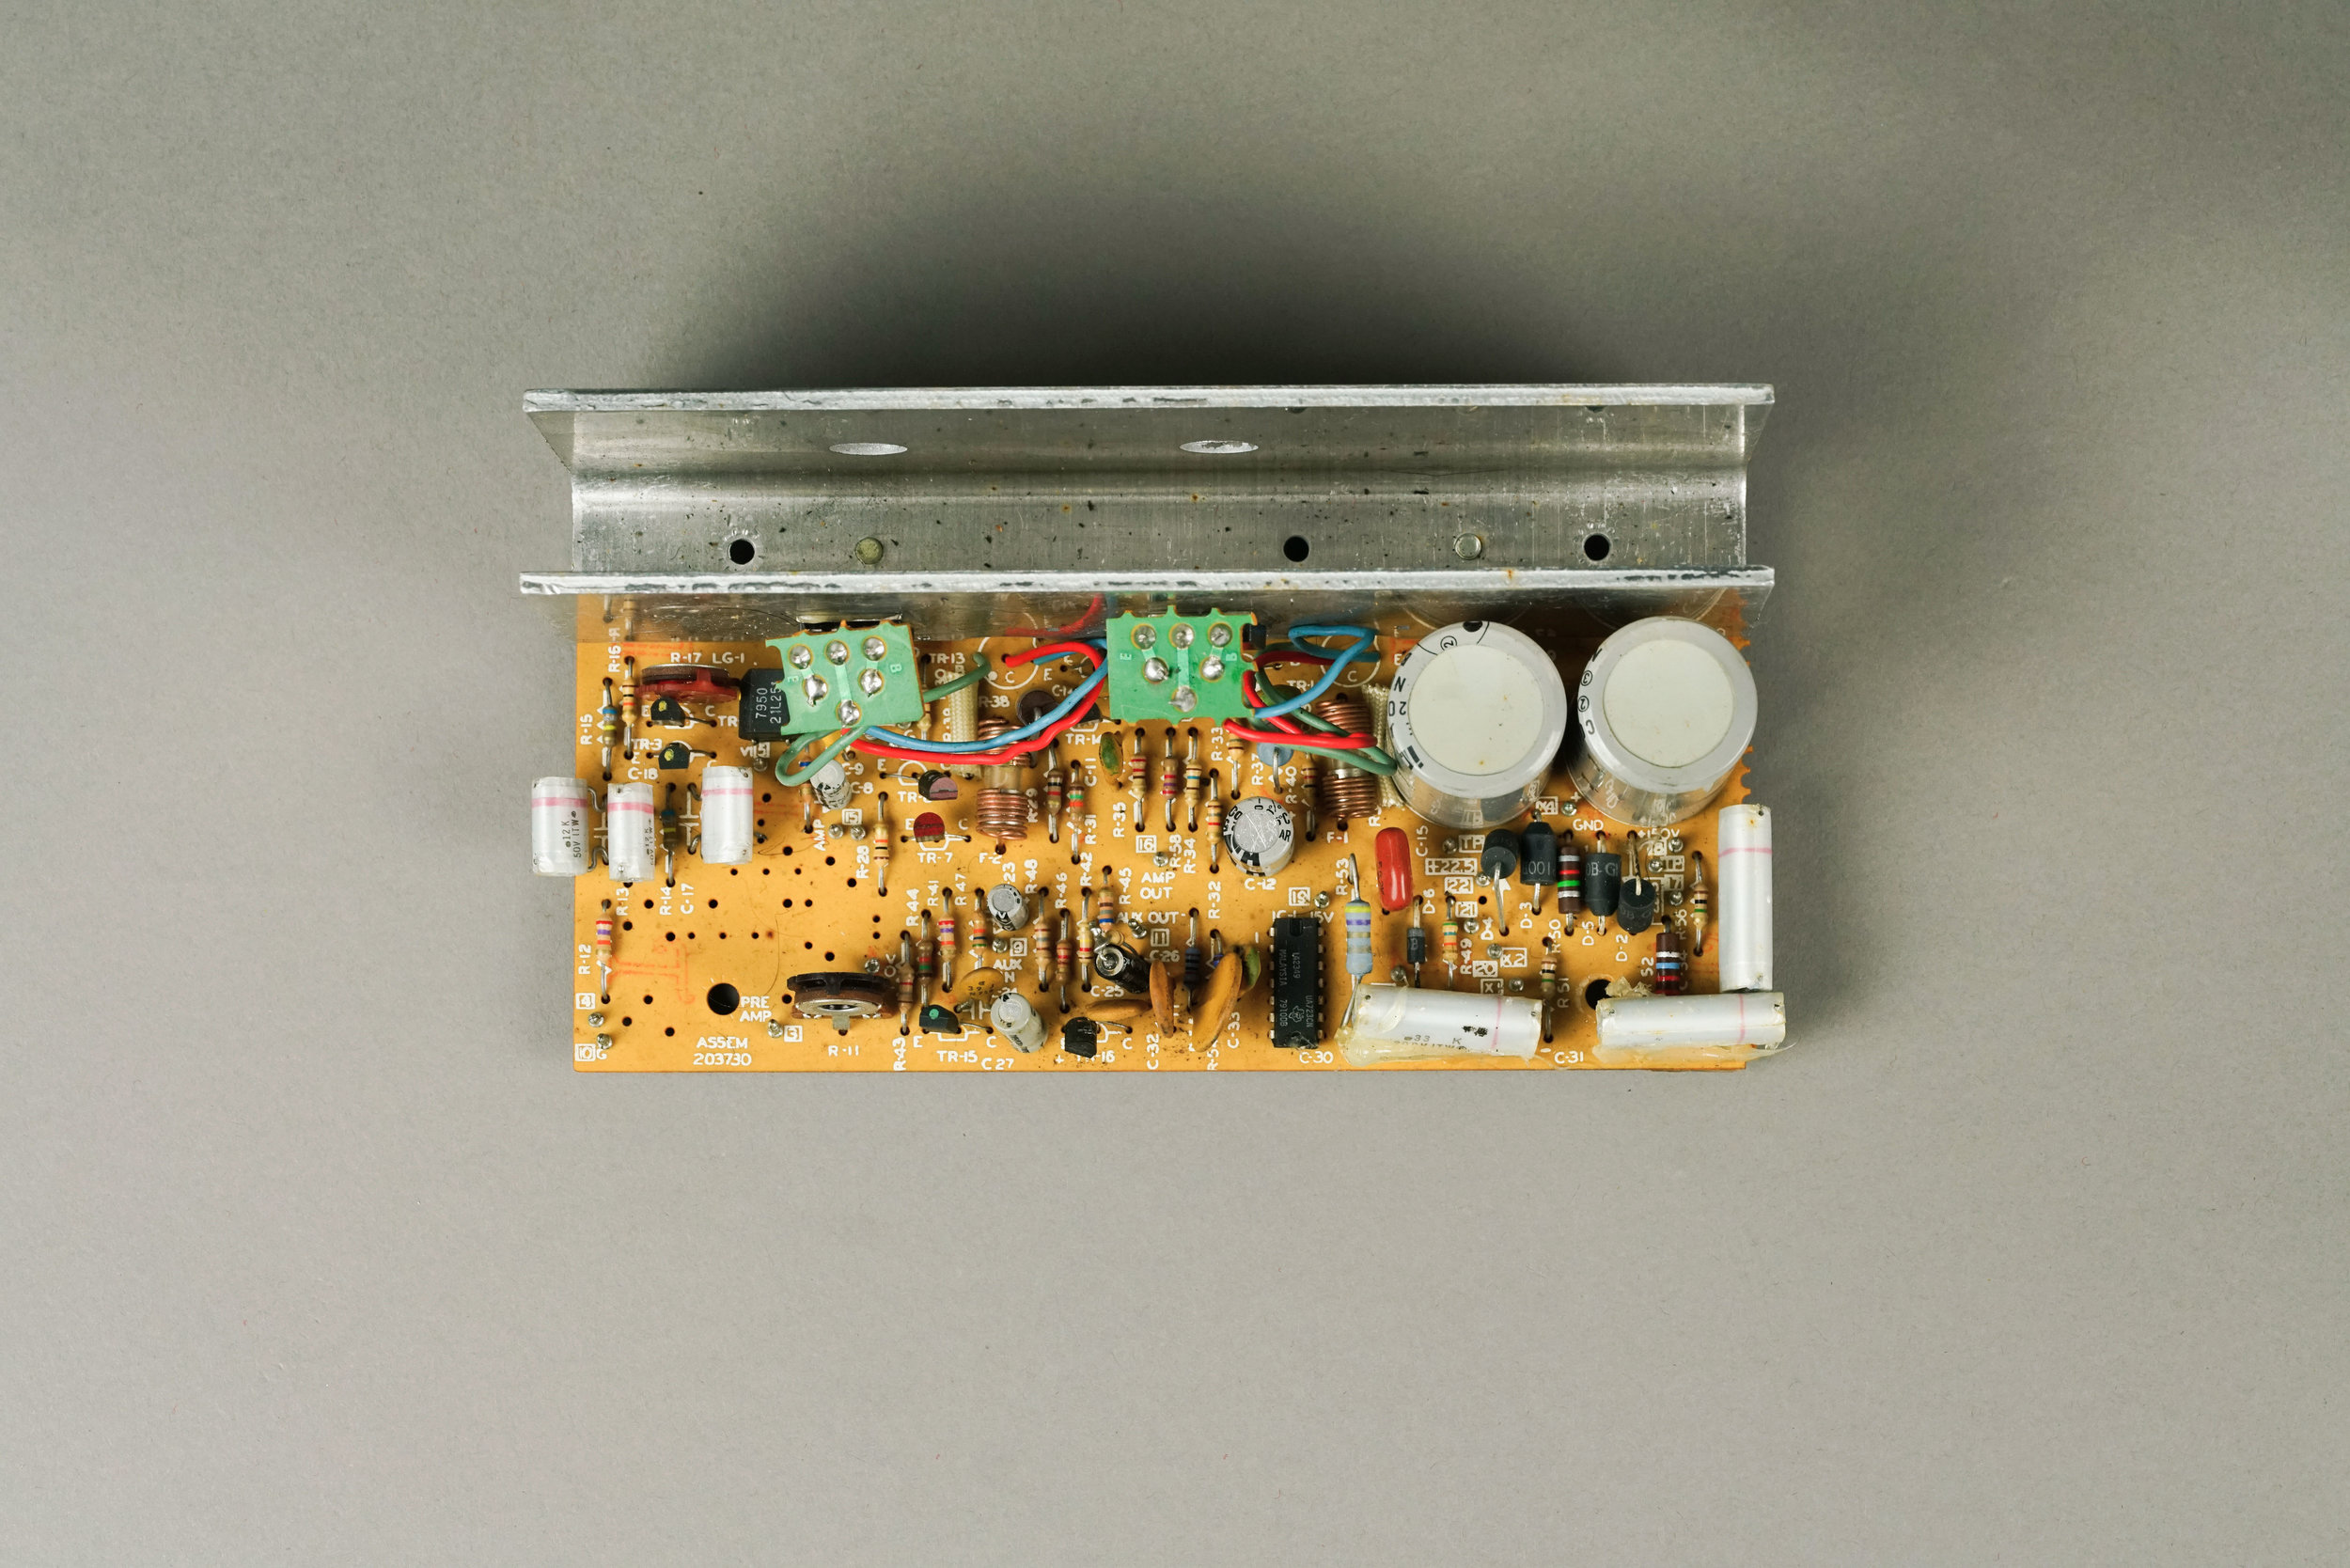 Contrast this Wurlitzer 200a amplifier with the 140a above. Here, the power transistors are mounted upside-down on the small green circuit boards.